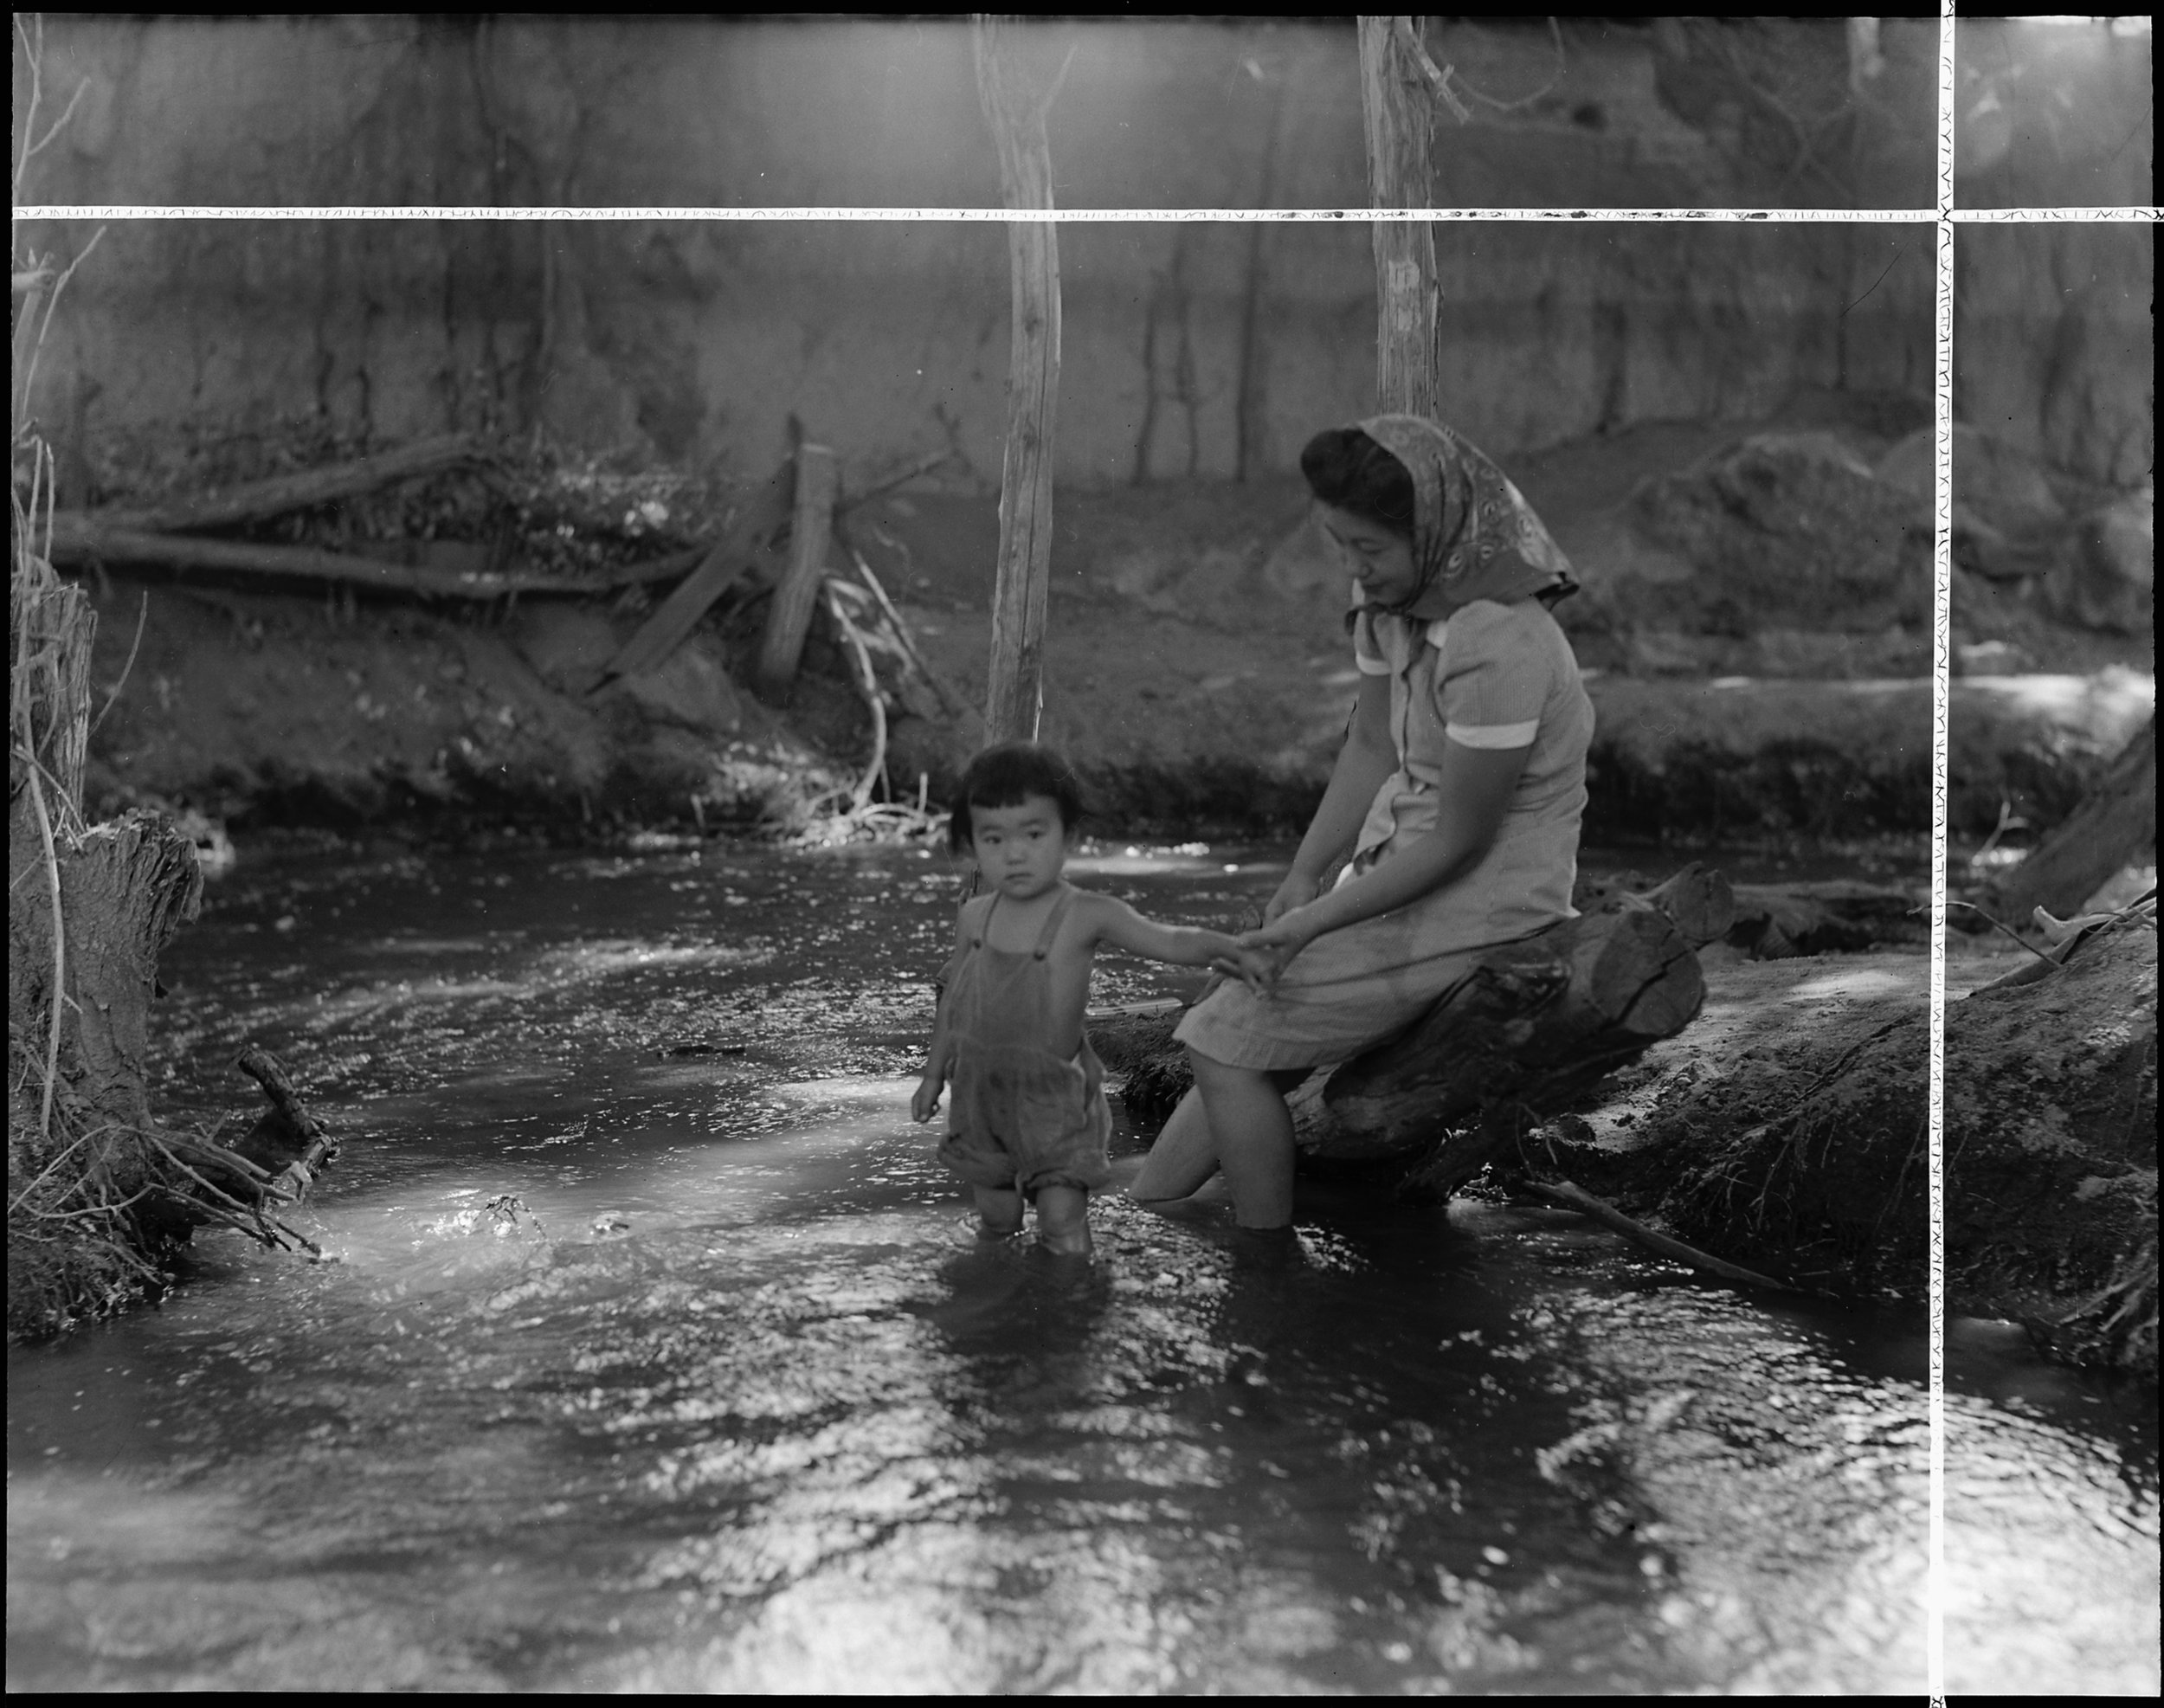 Manzanar Relocation Center, Manzanar, California. Evacuees enjoying the creek which flows along the outer border of this War Relocation Authority center.